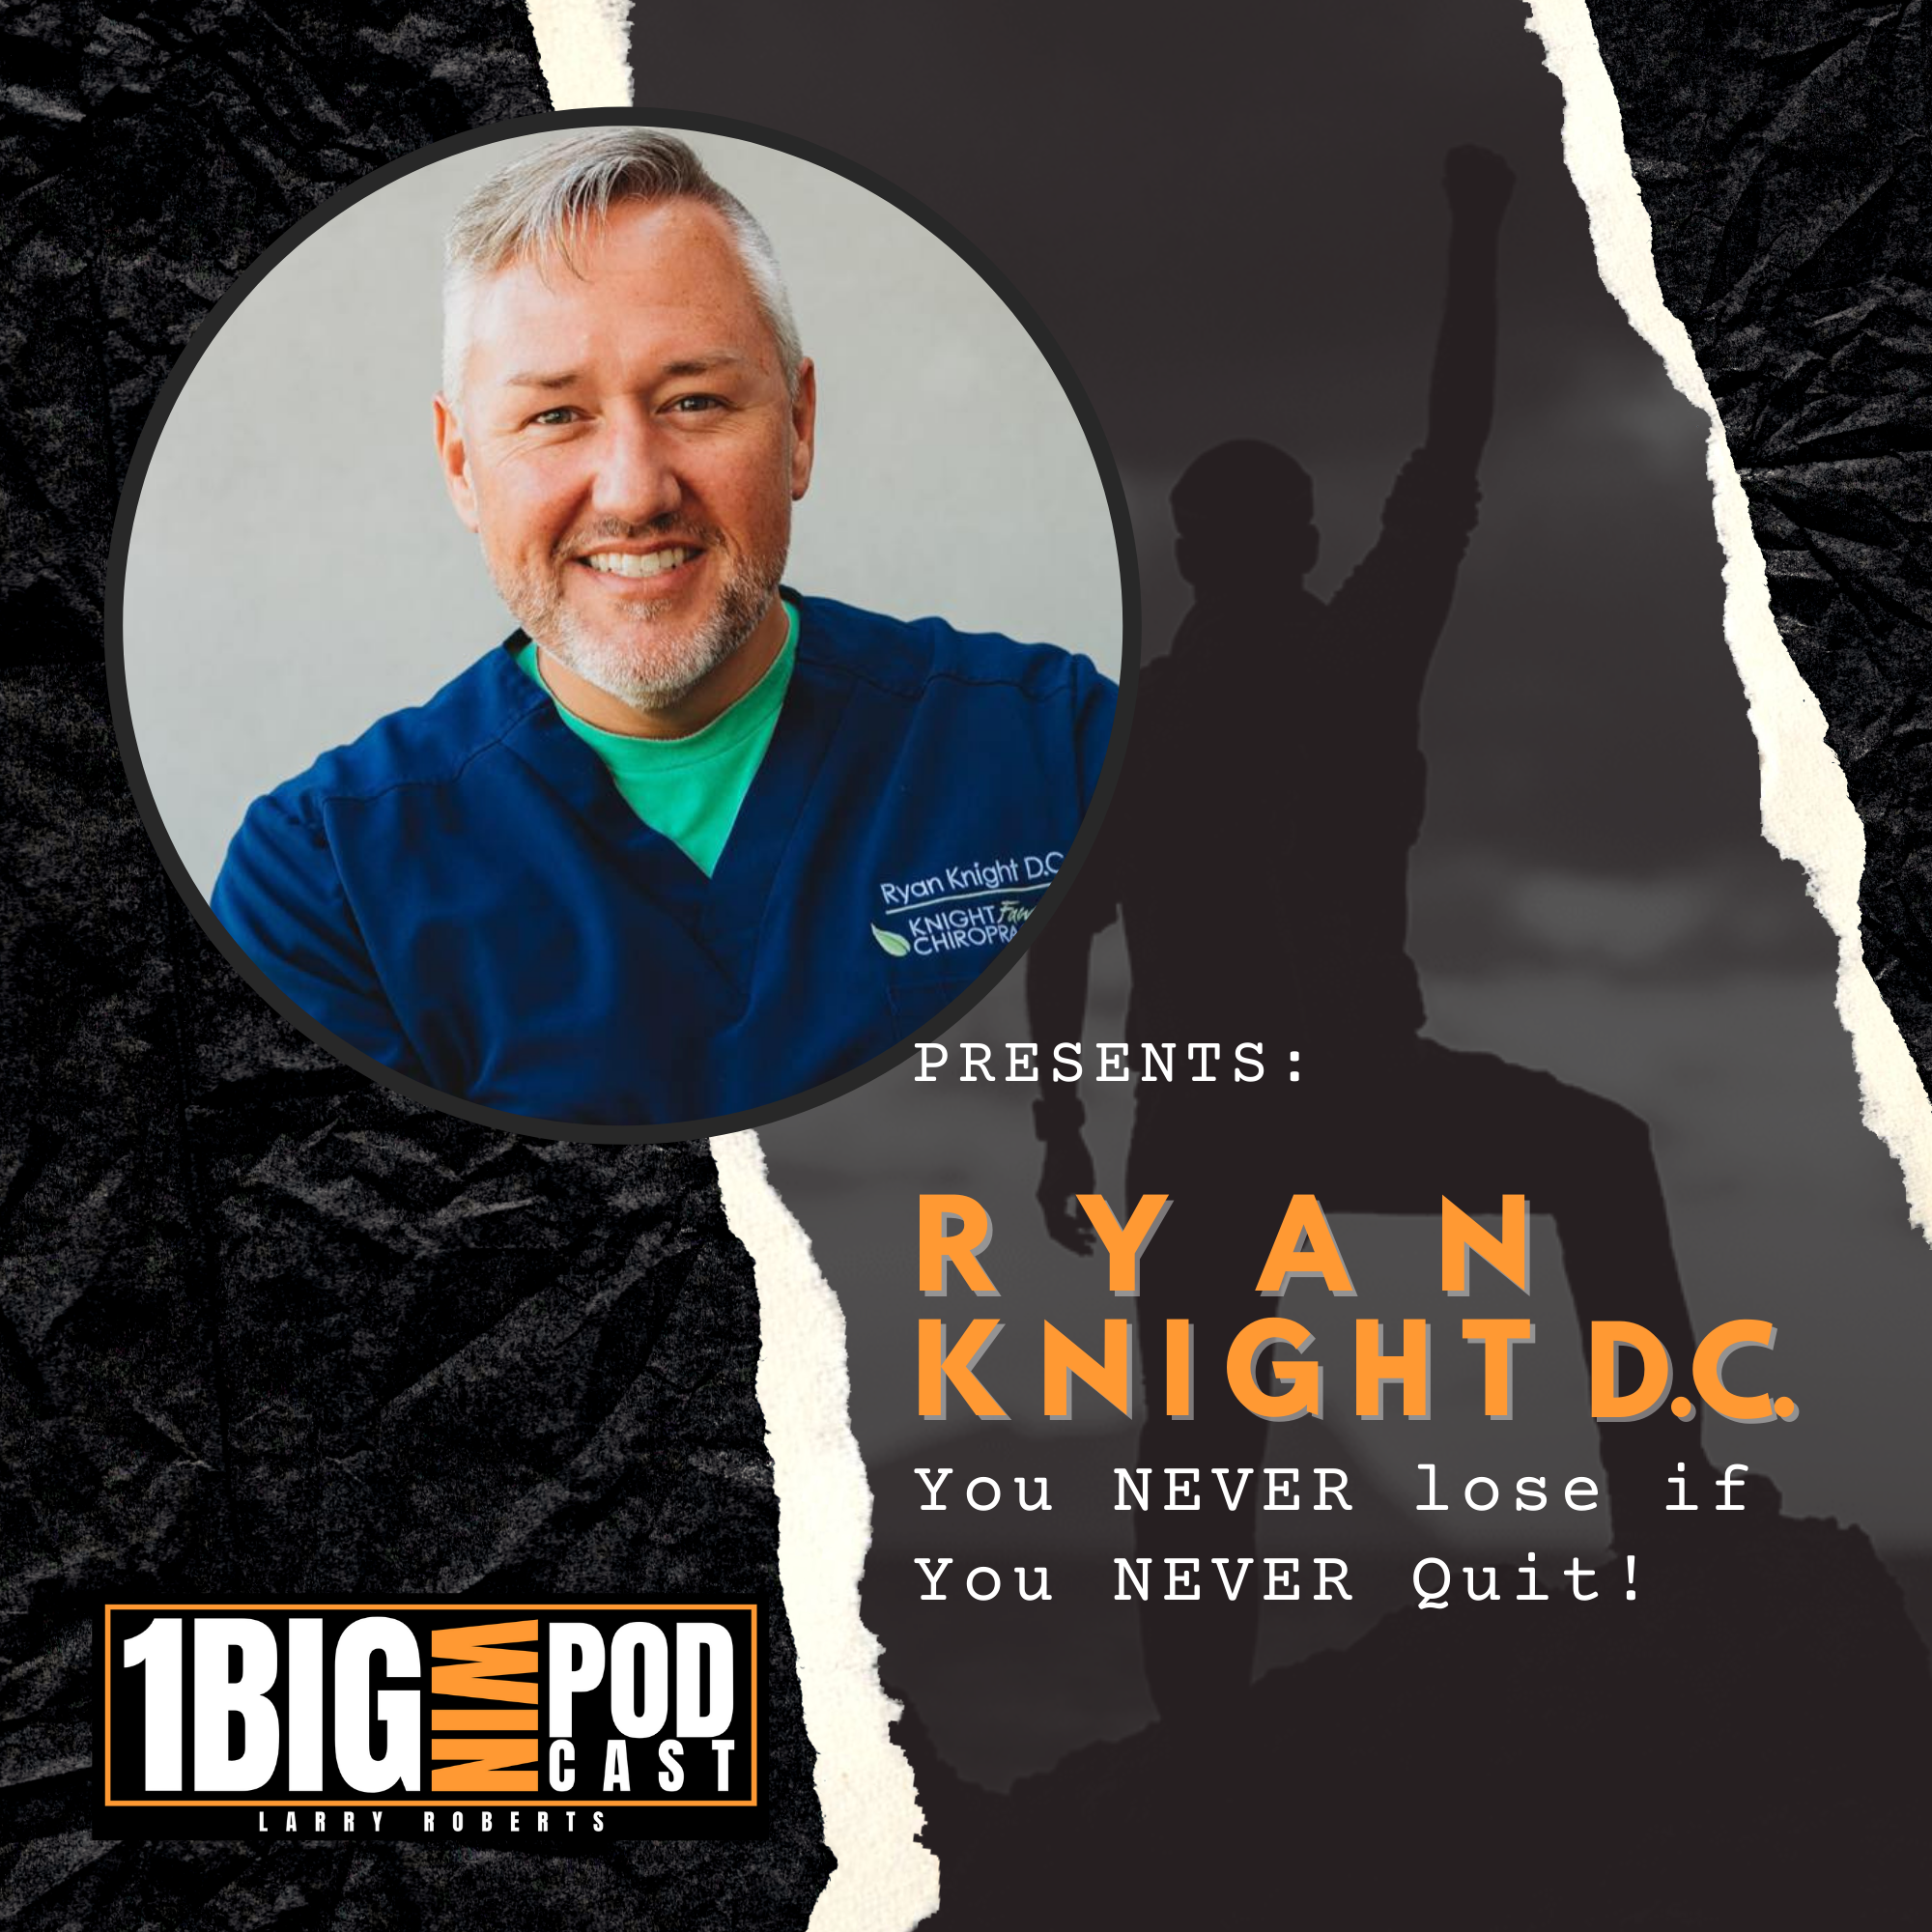 Dr. Ryan Knight | You NEVER Lose if you NEVER Quit!